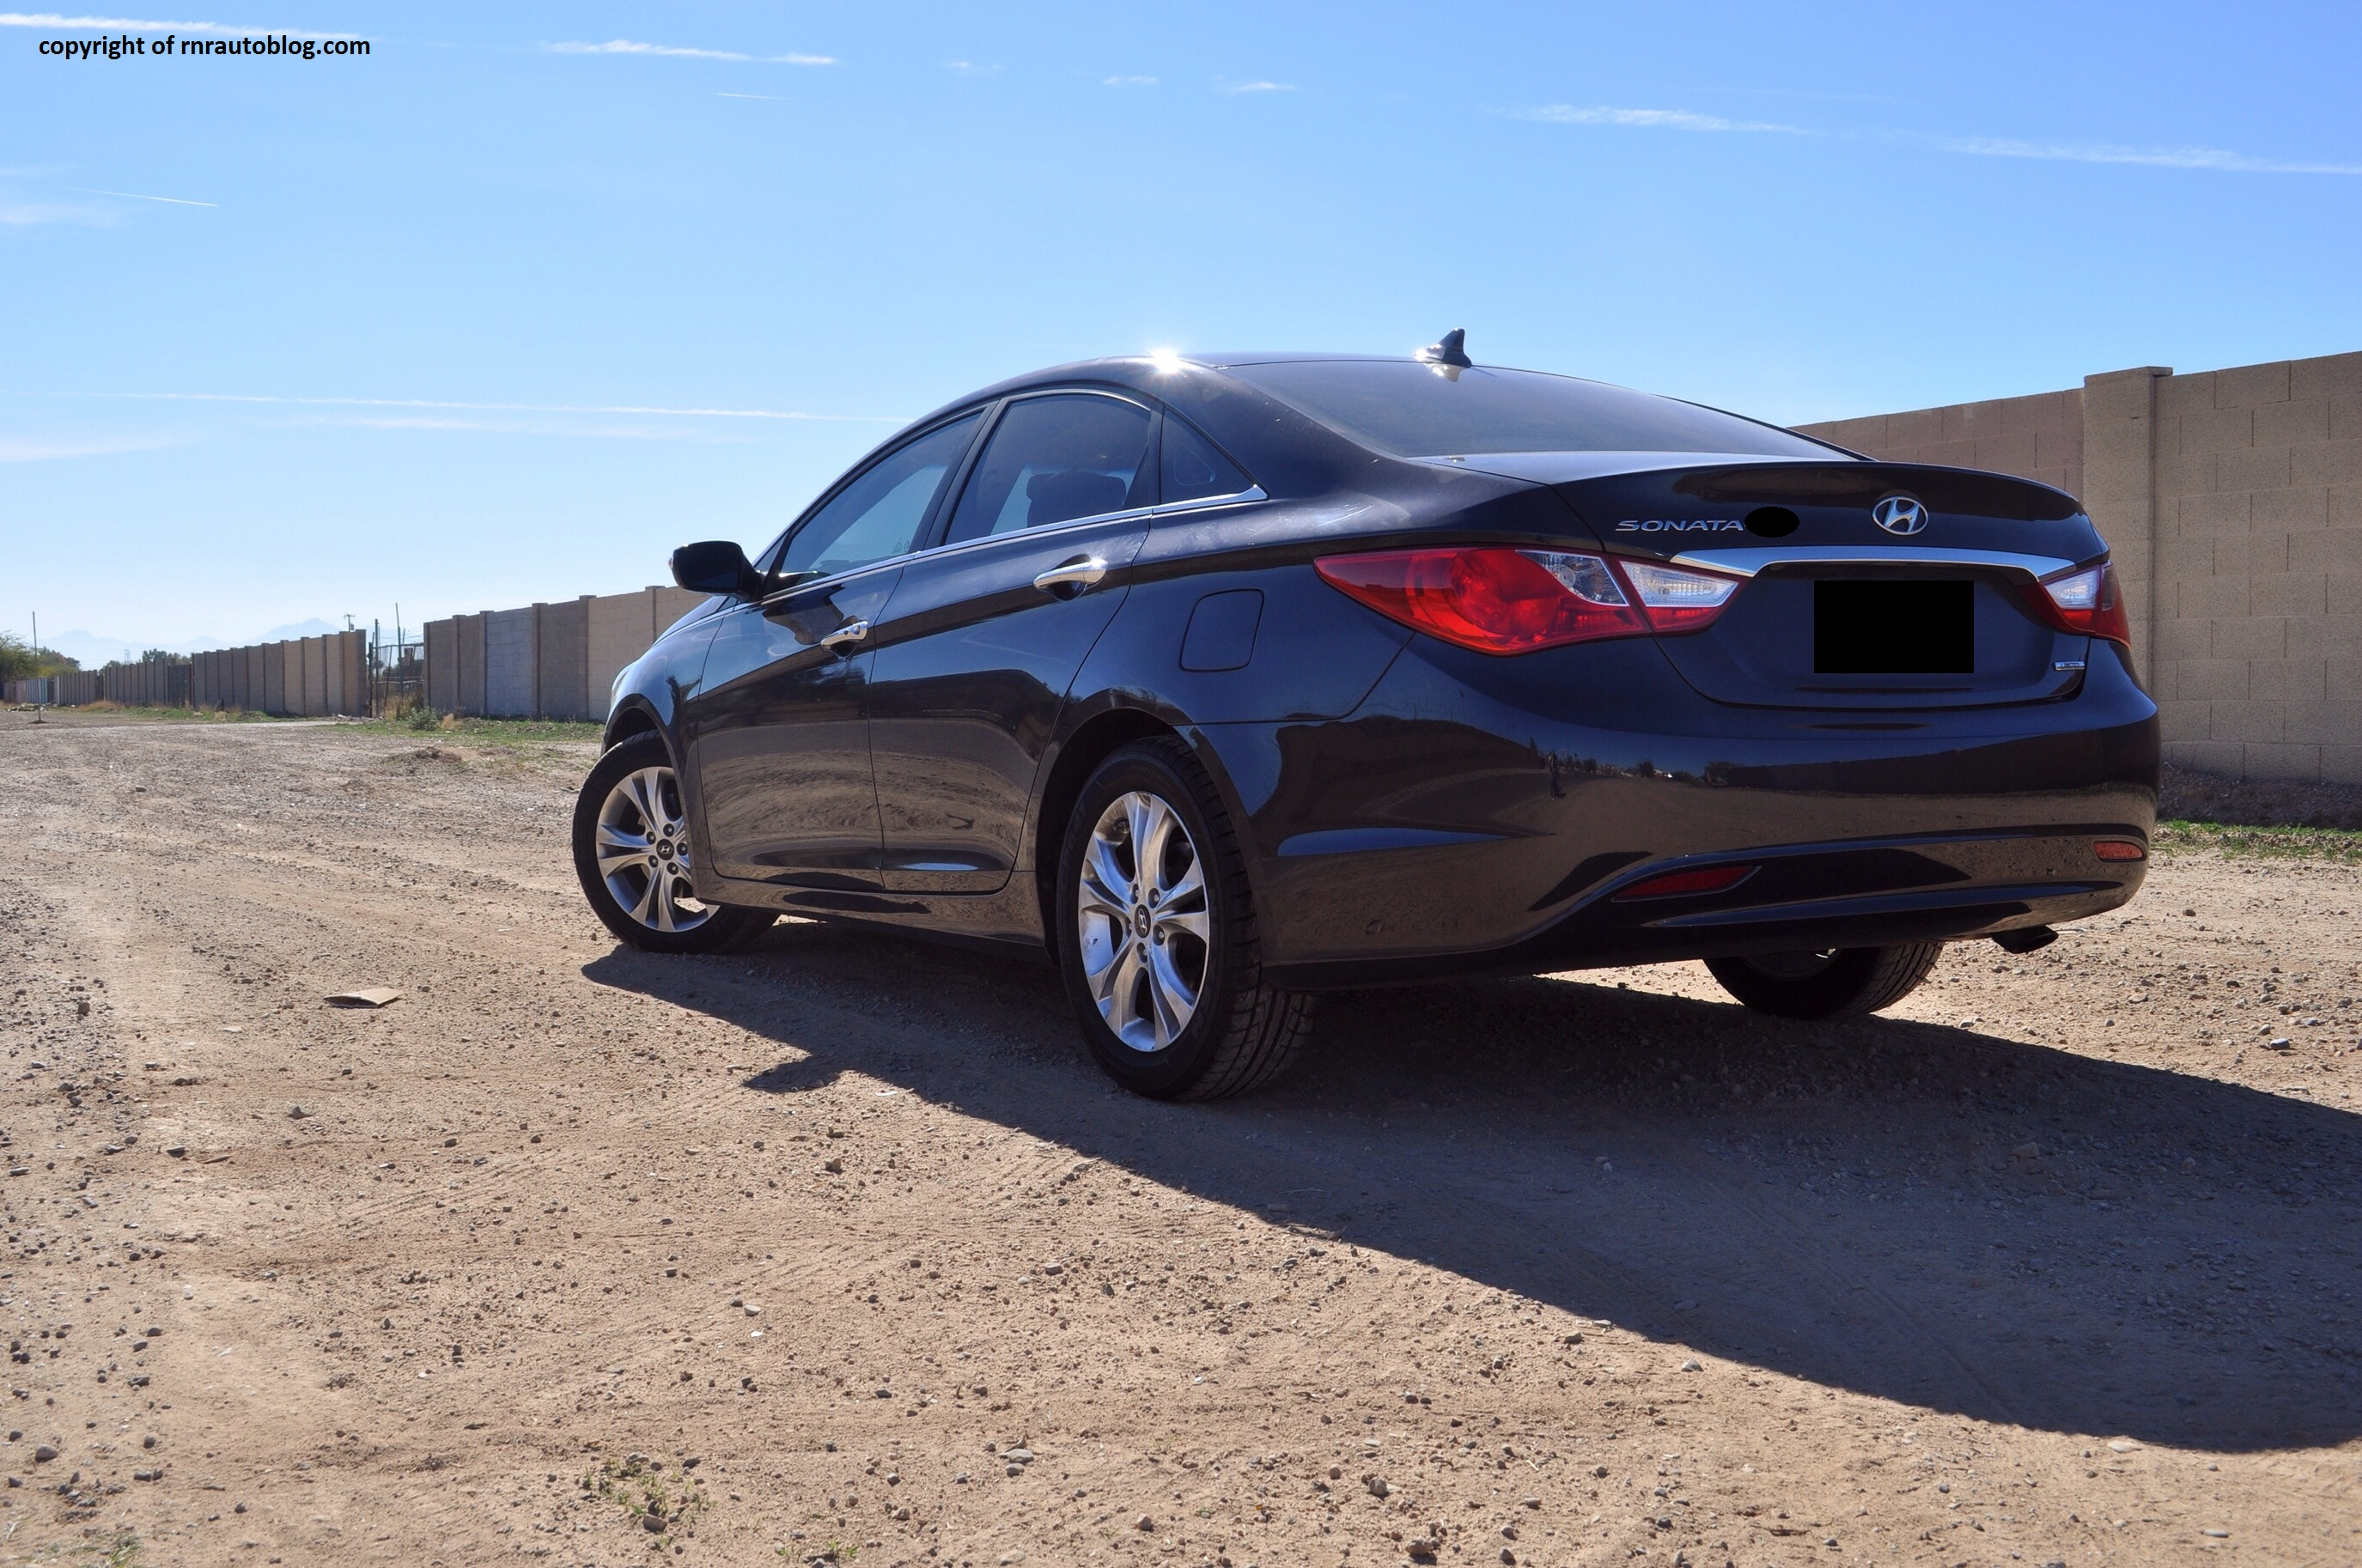 bruce sale inventory used the automatic sedan zoom hyundai fwd image cyl for group sonata limited en automotive on